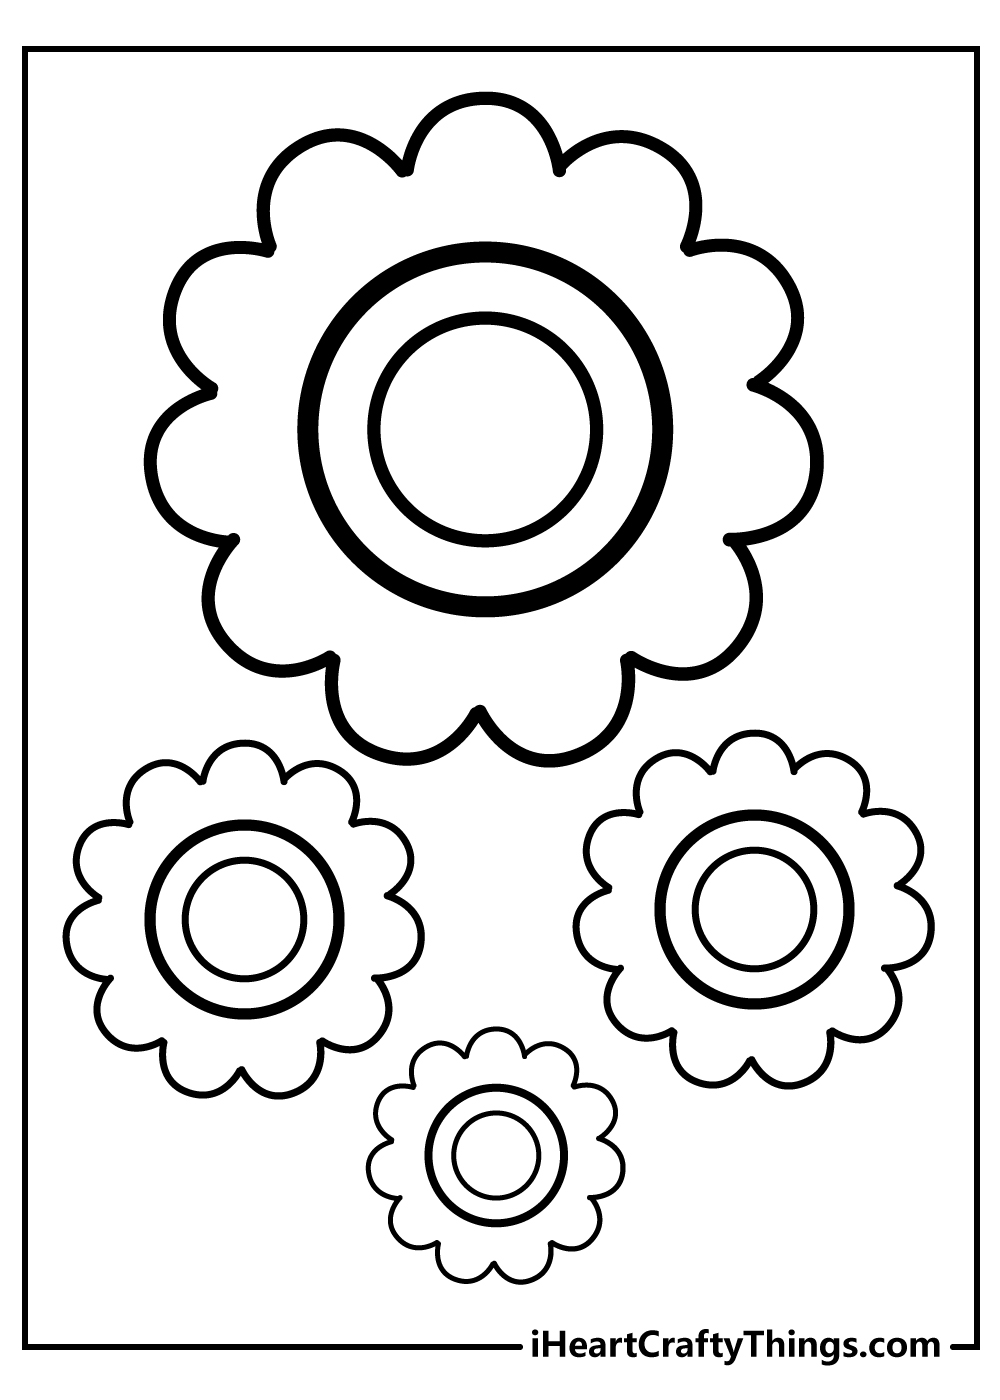 free simple flower coloring sheets for kids